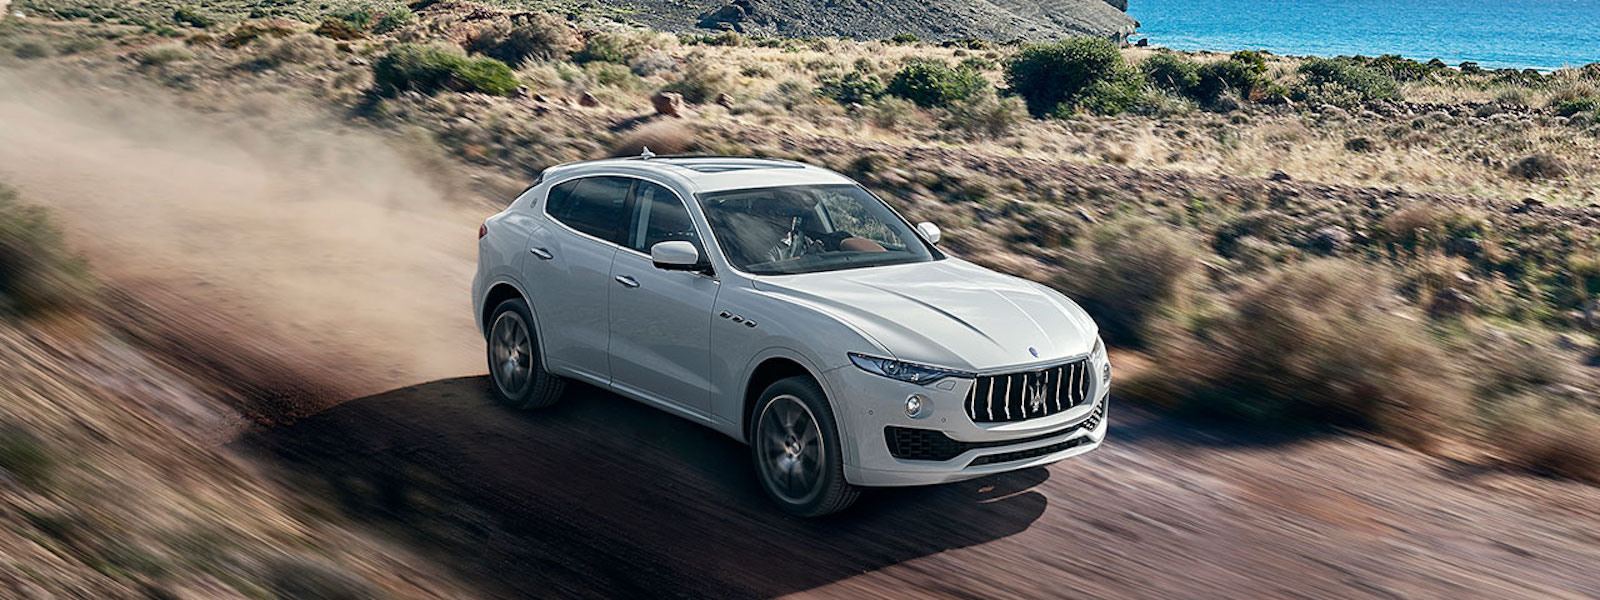 Maserati Levante Performance